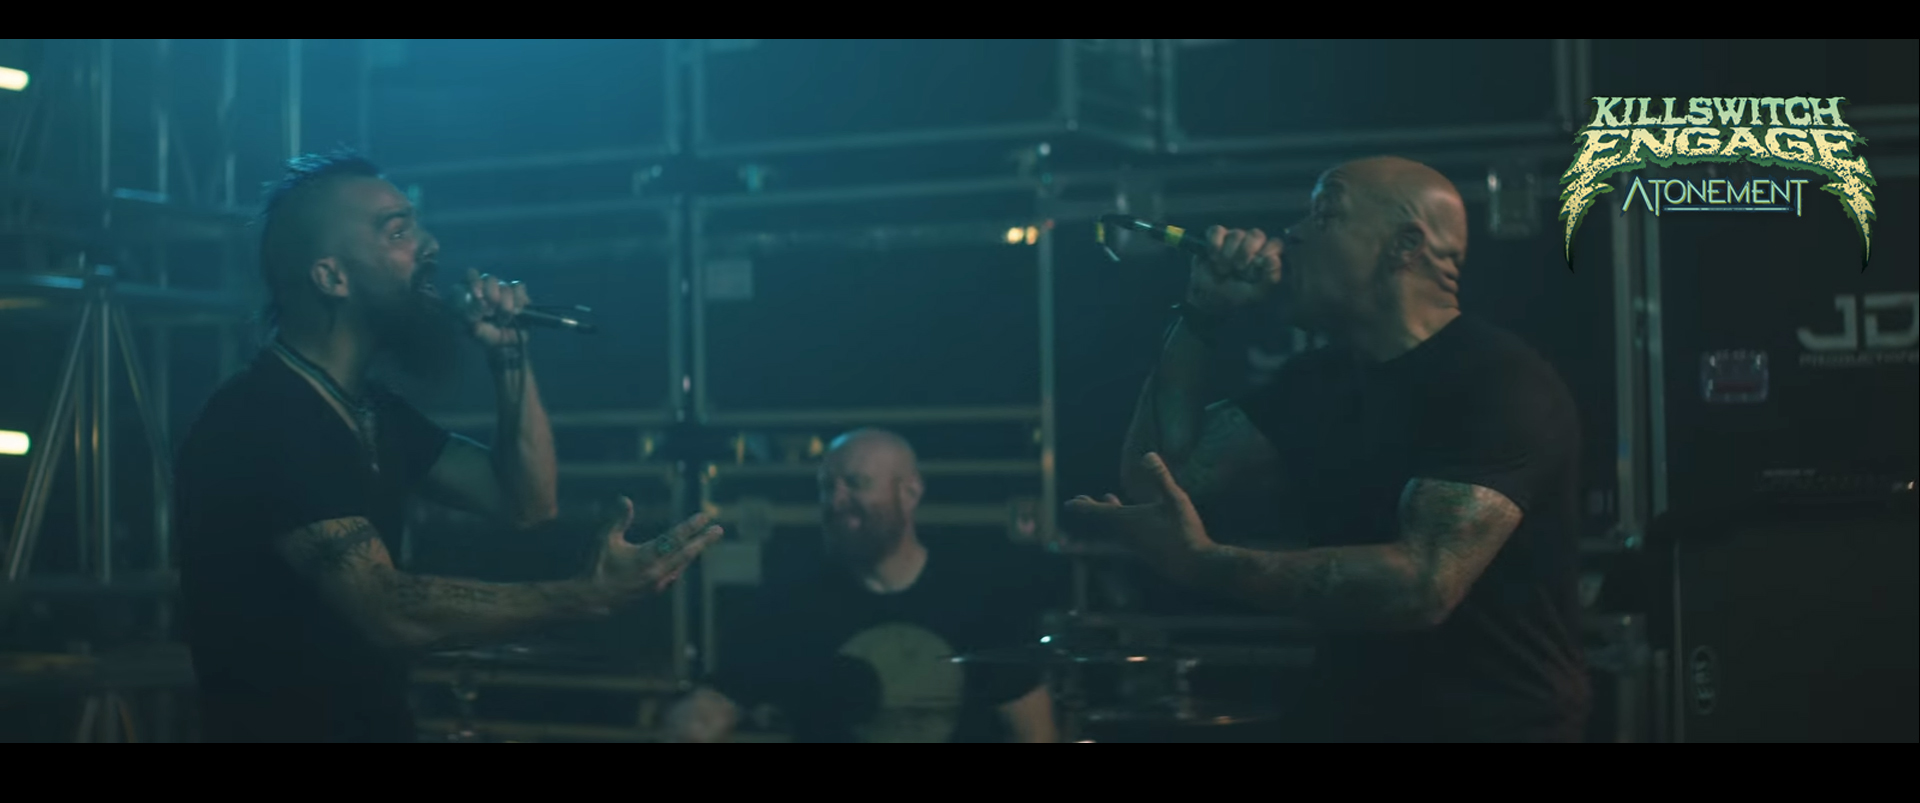 KILLSWITCH ENGAGE - release new video for